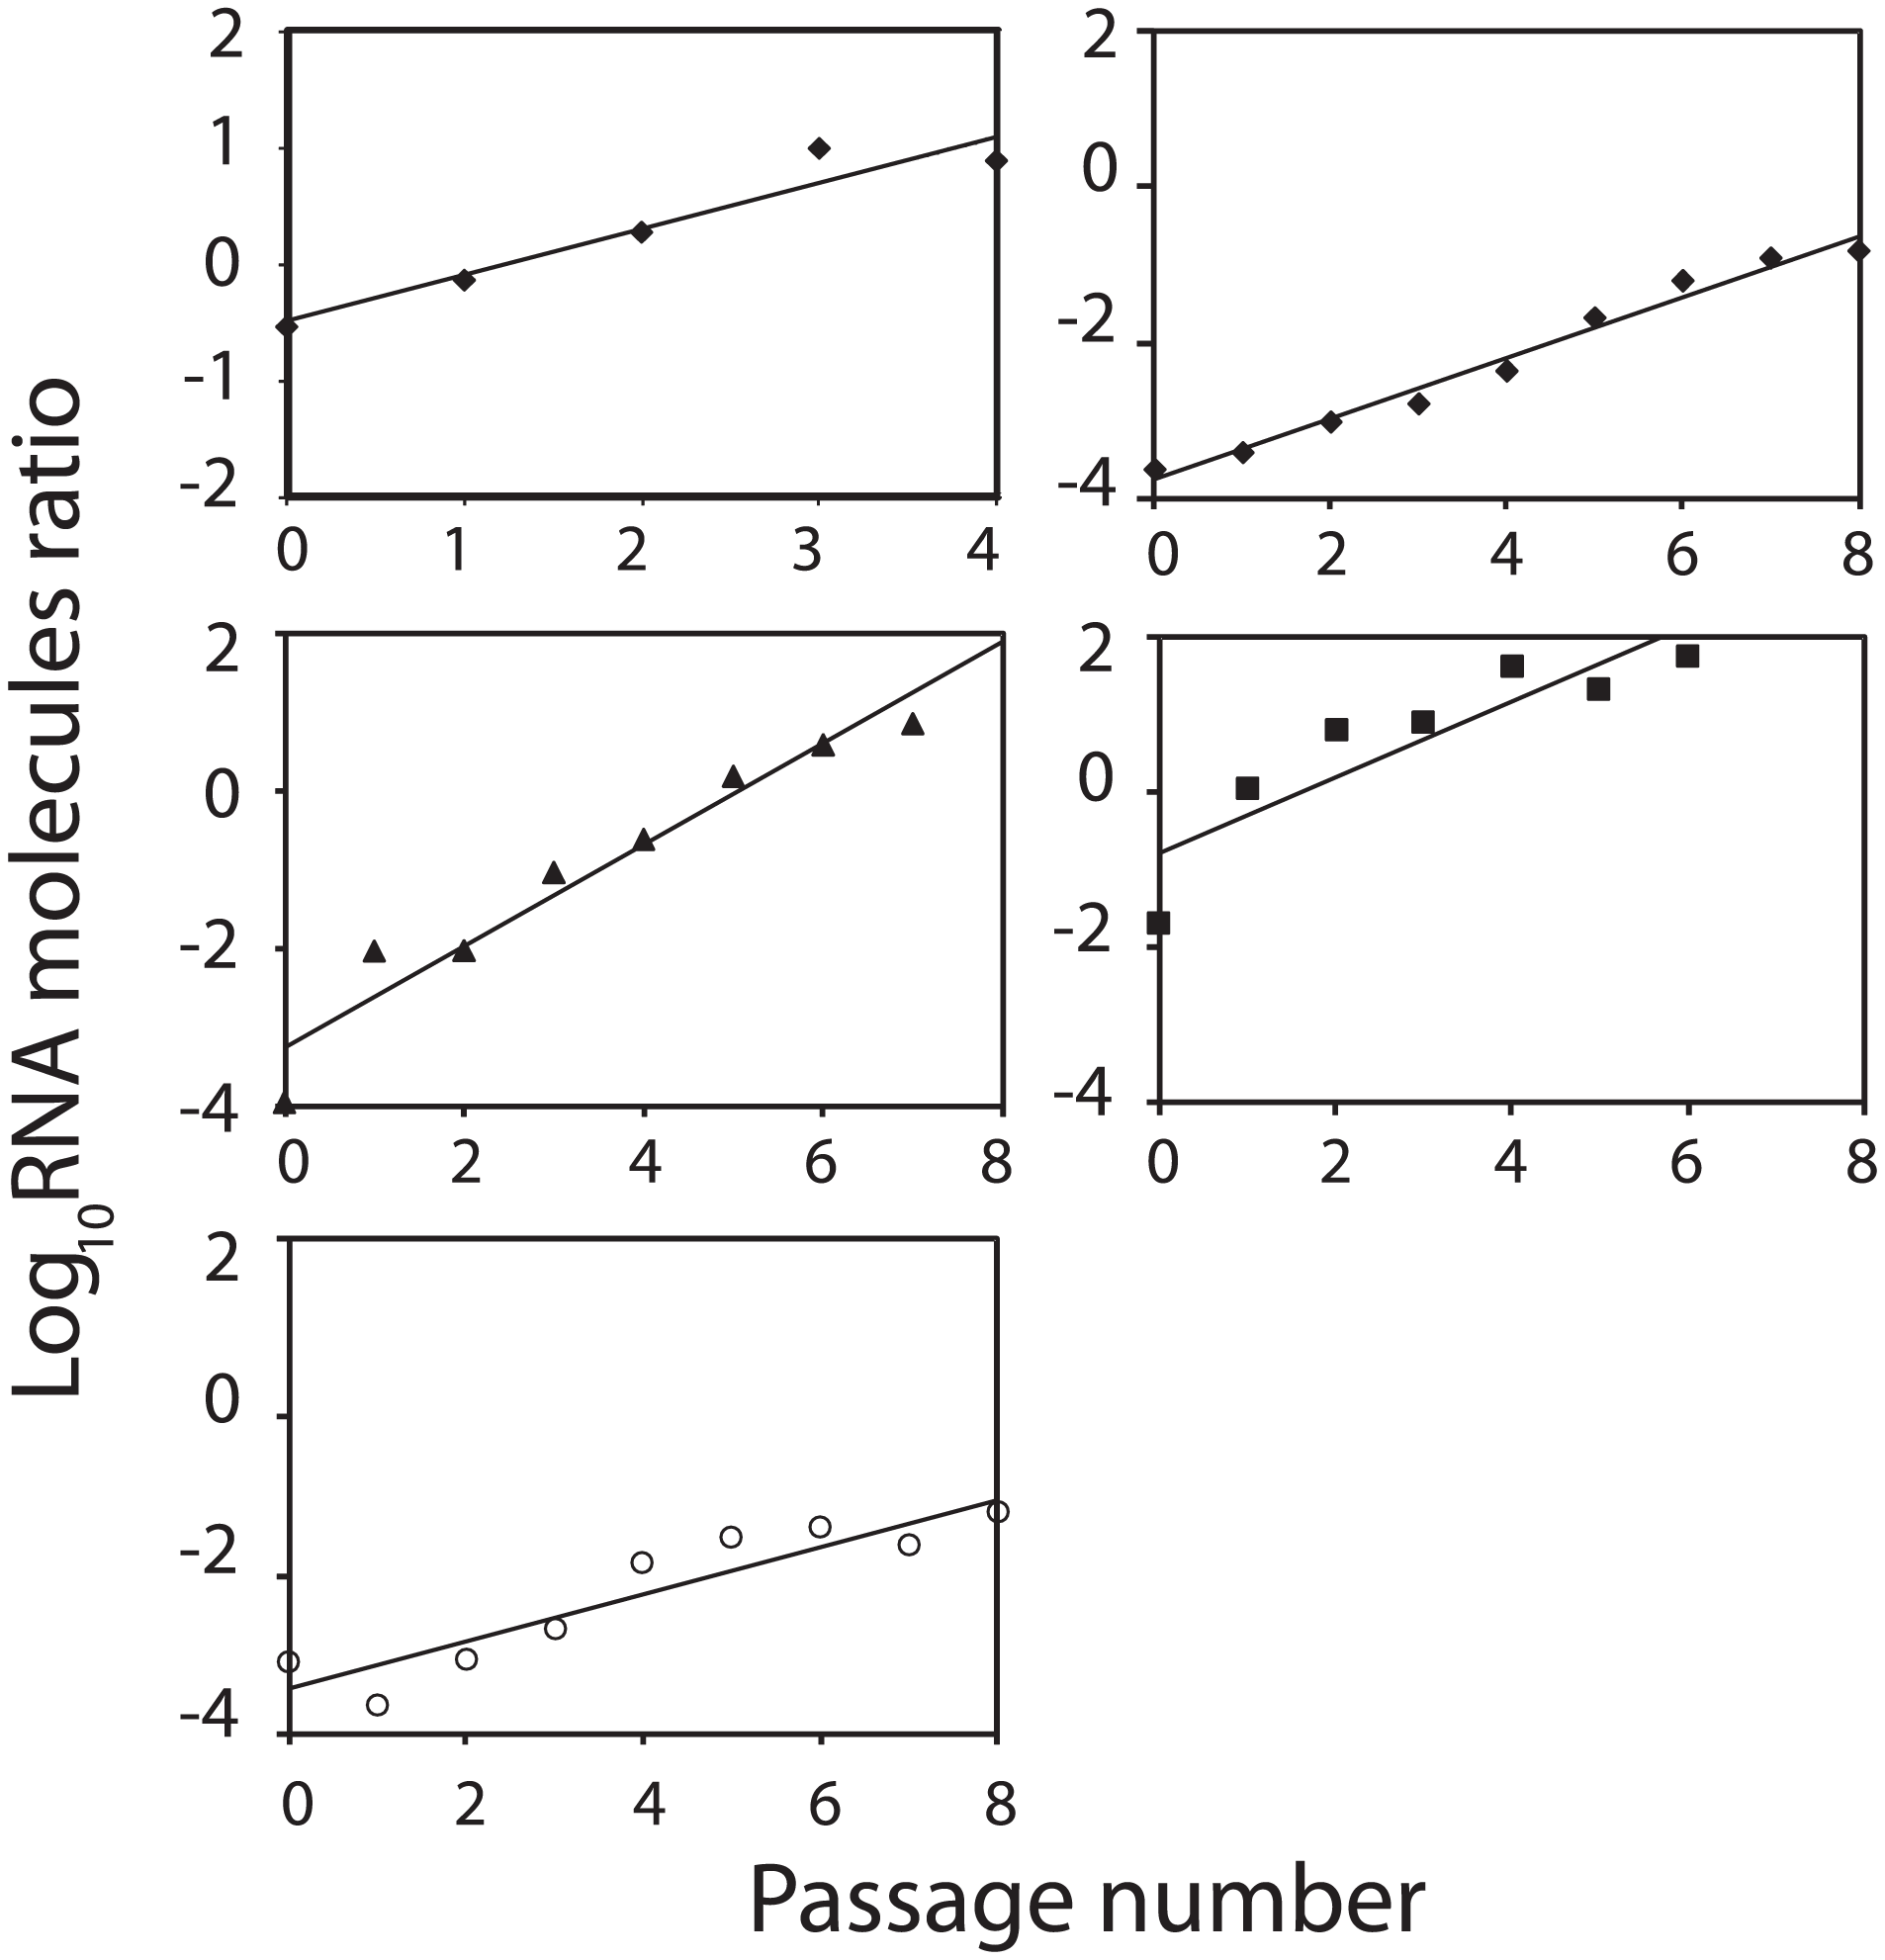 Growth-competition between FMDV mutants.